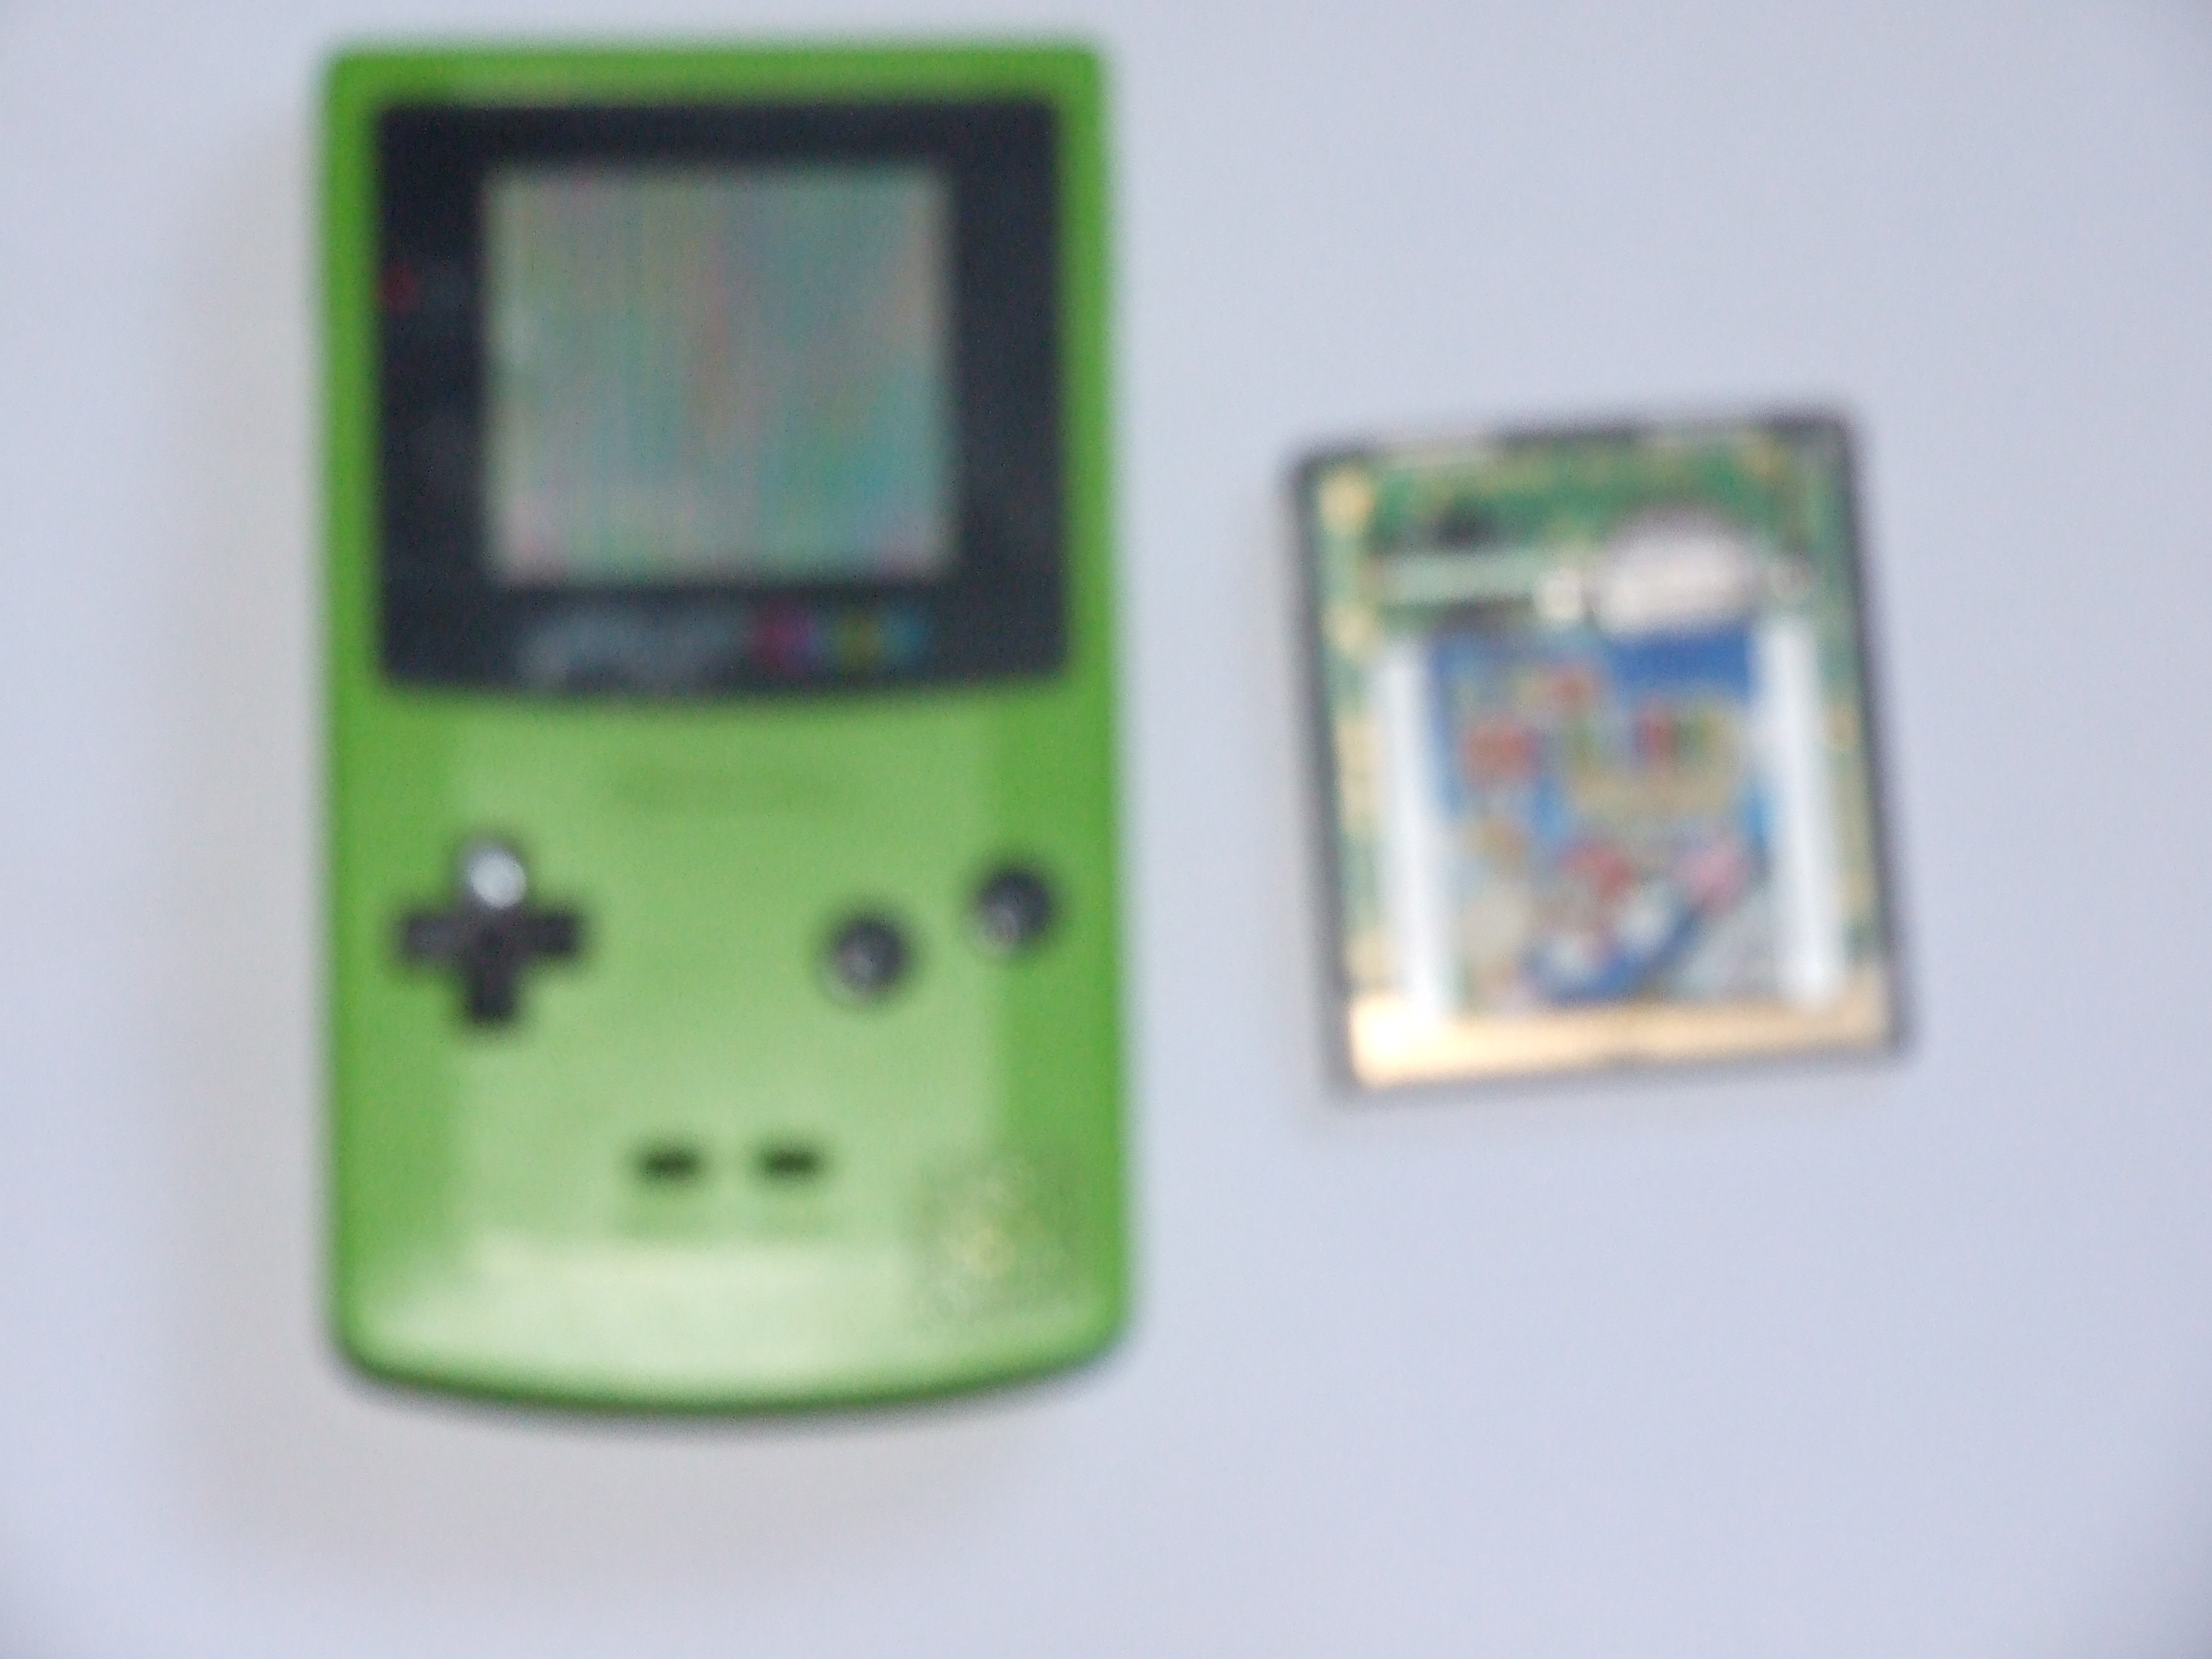 Game Boy Color and Super Mario Bros. Deluxe cartridge together